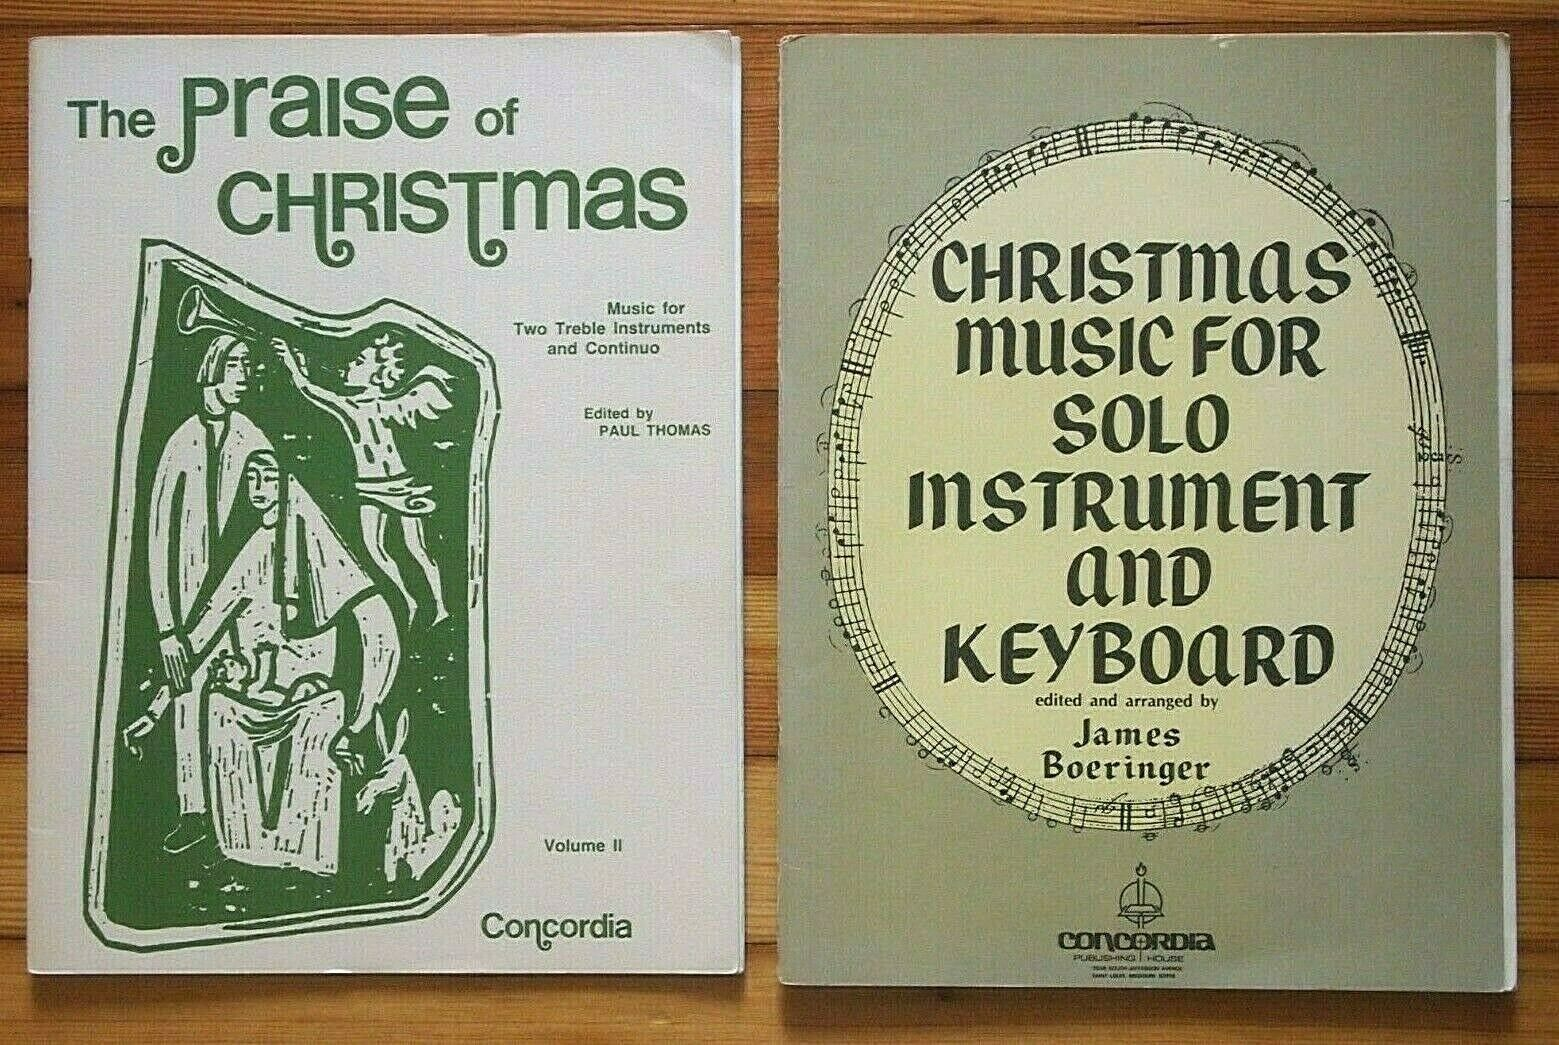 CHRISTMAS Music For Solo Instrument s Keyboard/Continuo / PRAISE OF--- PARTS - $10.00